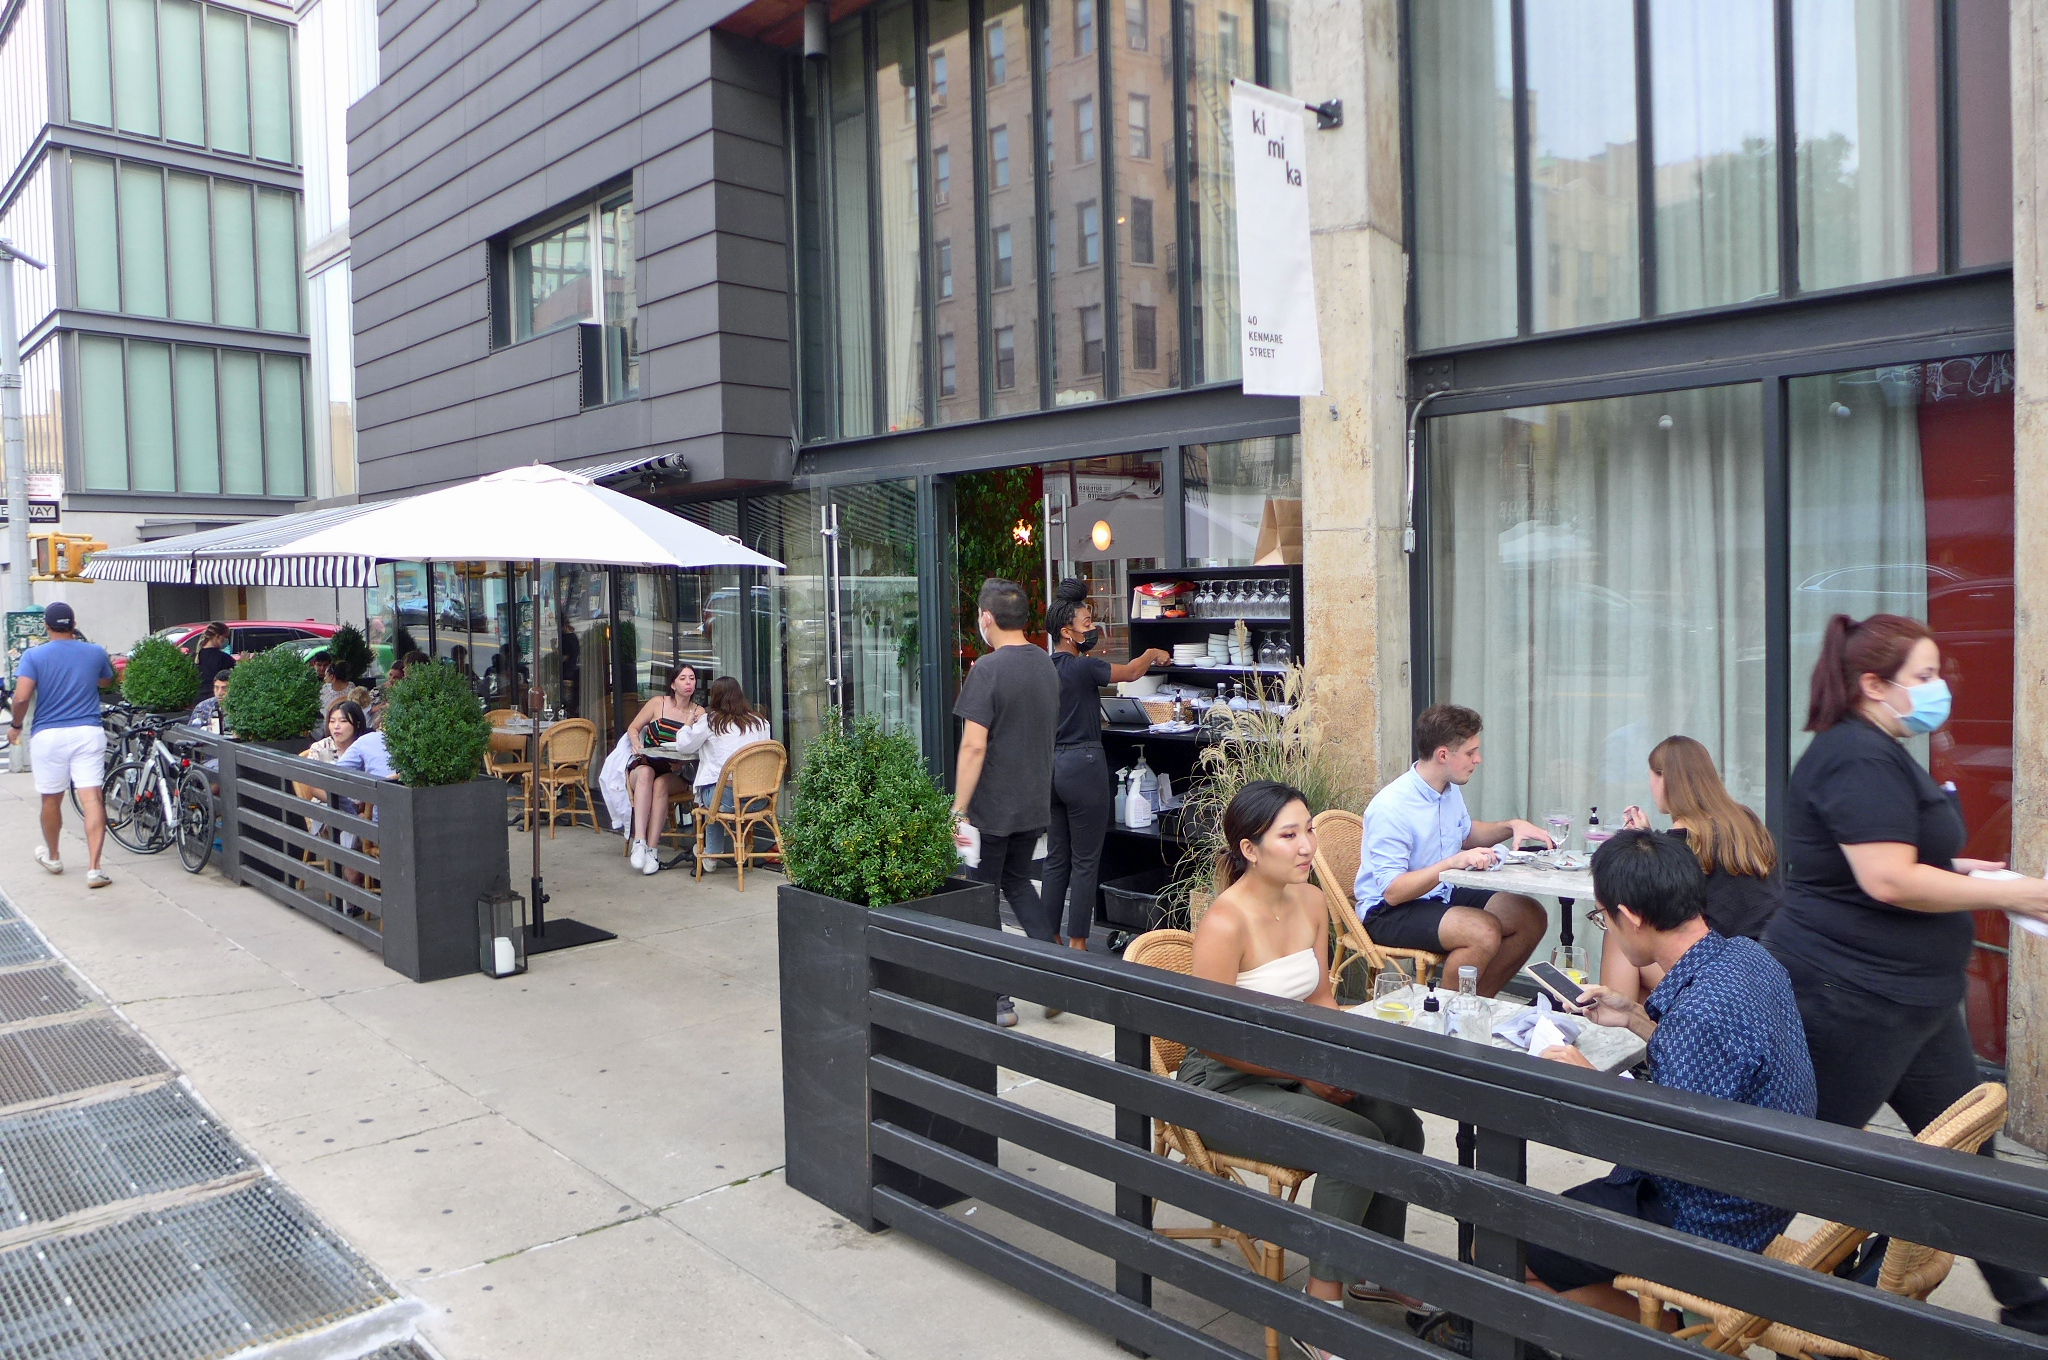 A black fence separates tables full of diners from the sidewalk, as a waitress in a mask walks out of the frame on the right.